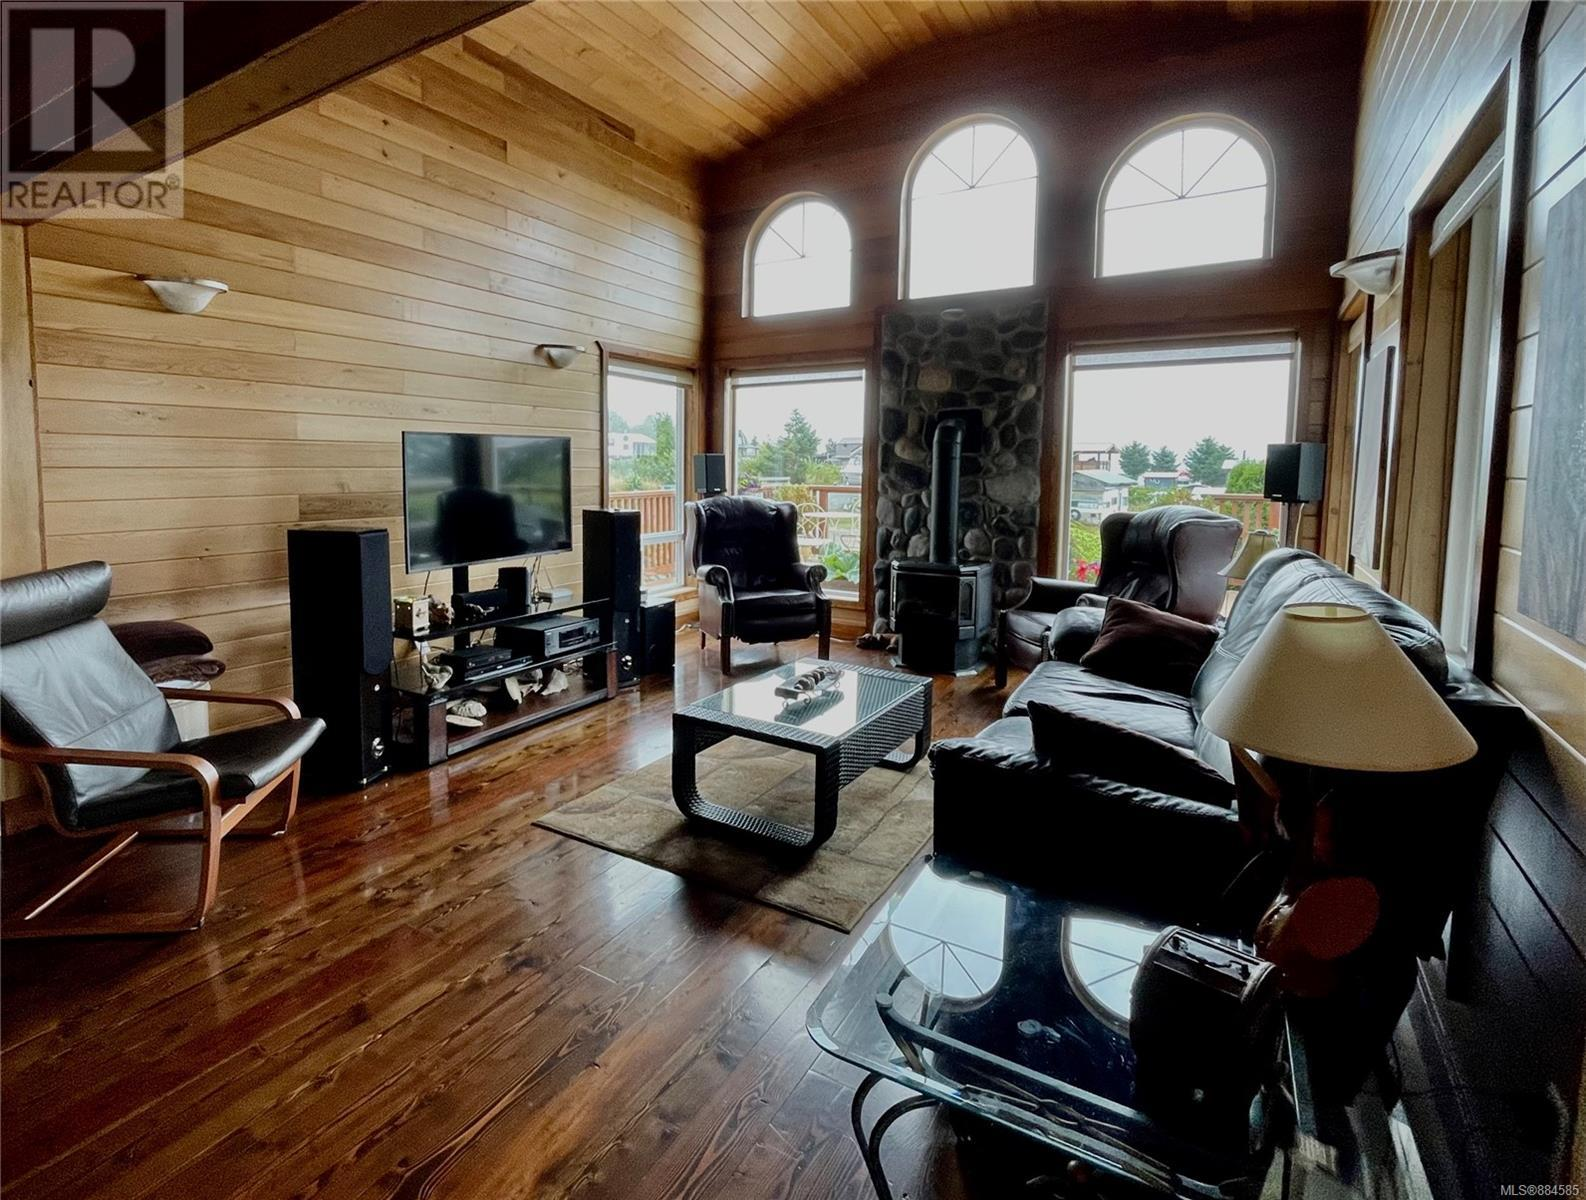 MLS® #884585 - Ucluelet House For sale Image #7